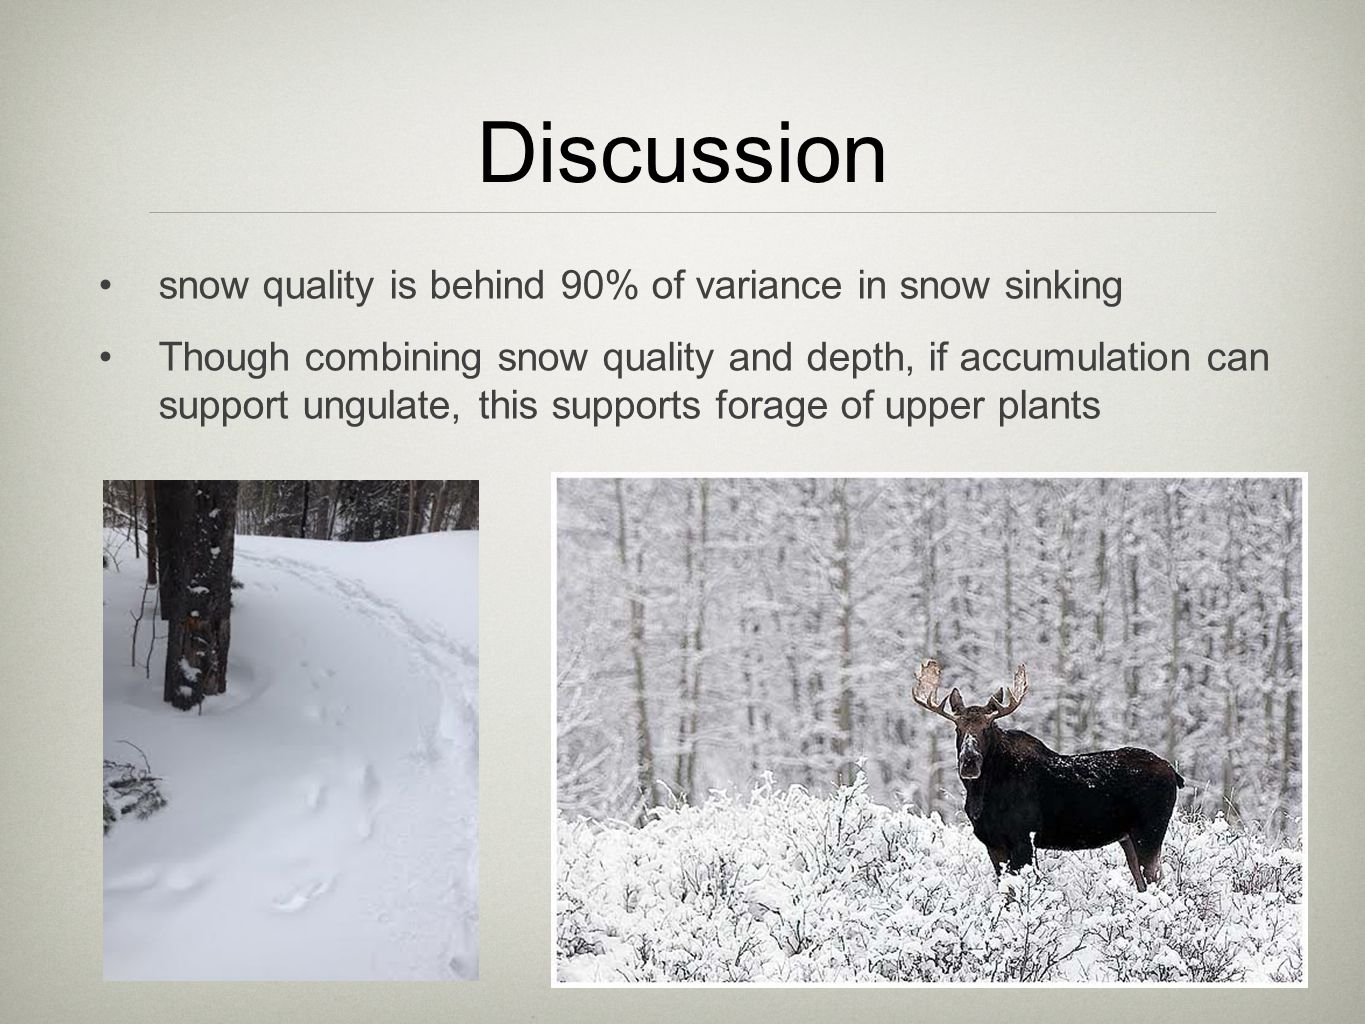 Discussion snow quality is behind 90% of variance in snow sinking Though combining snow quality and depth, if accumulation can support ungulate, this supports forage of upper plants